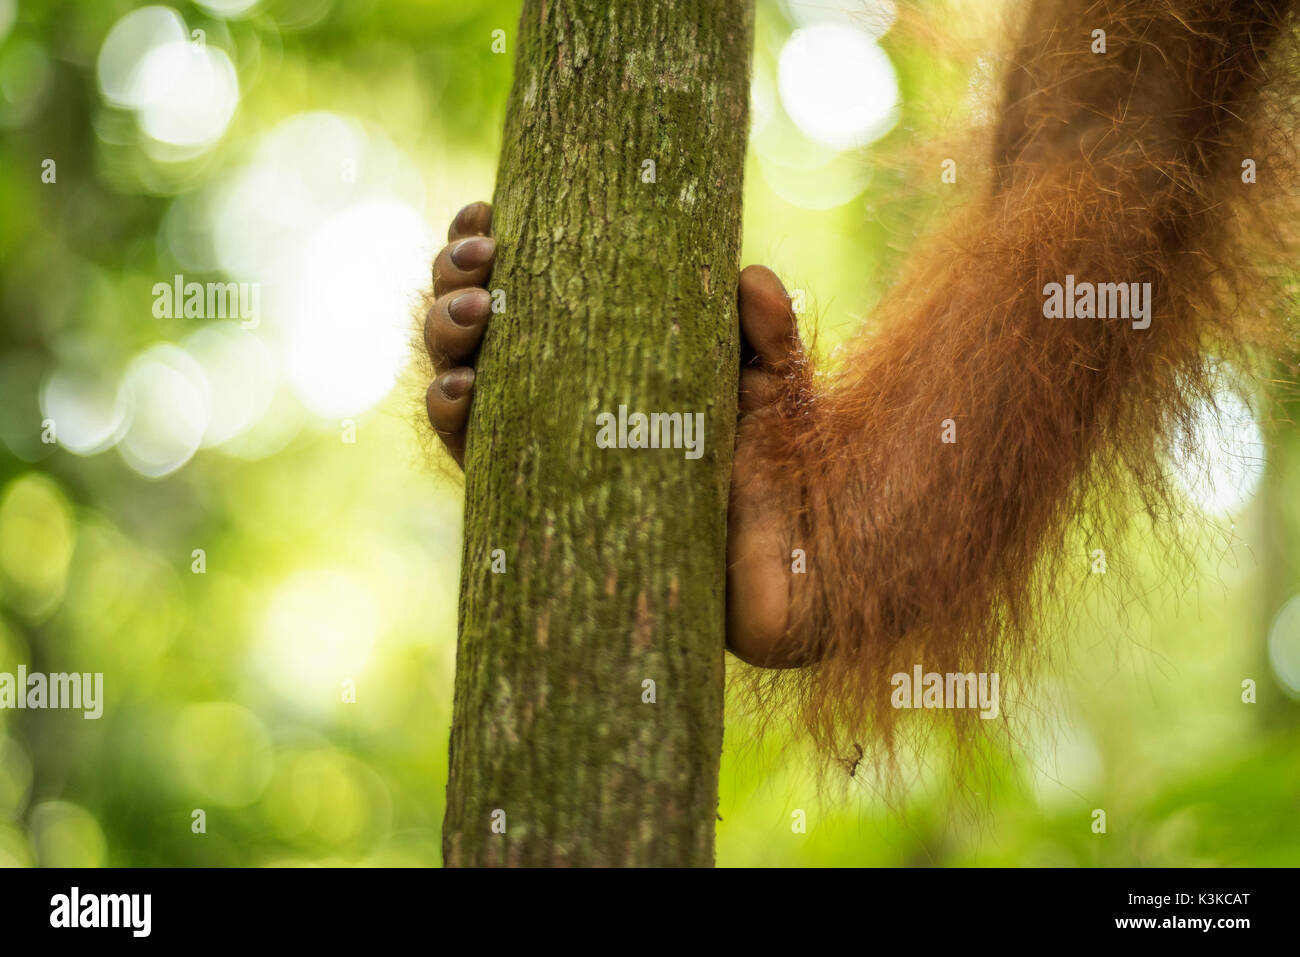 Foot of a forest person, Orang Utan in the Gunung Leuser national park on Sumatra, Indonesia. Stock Photo